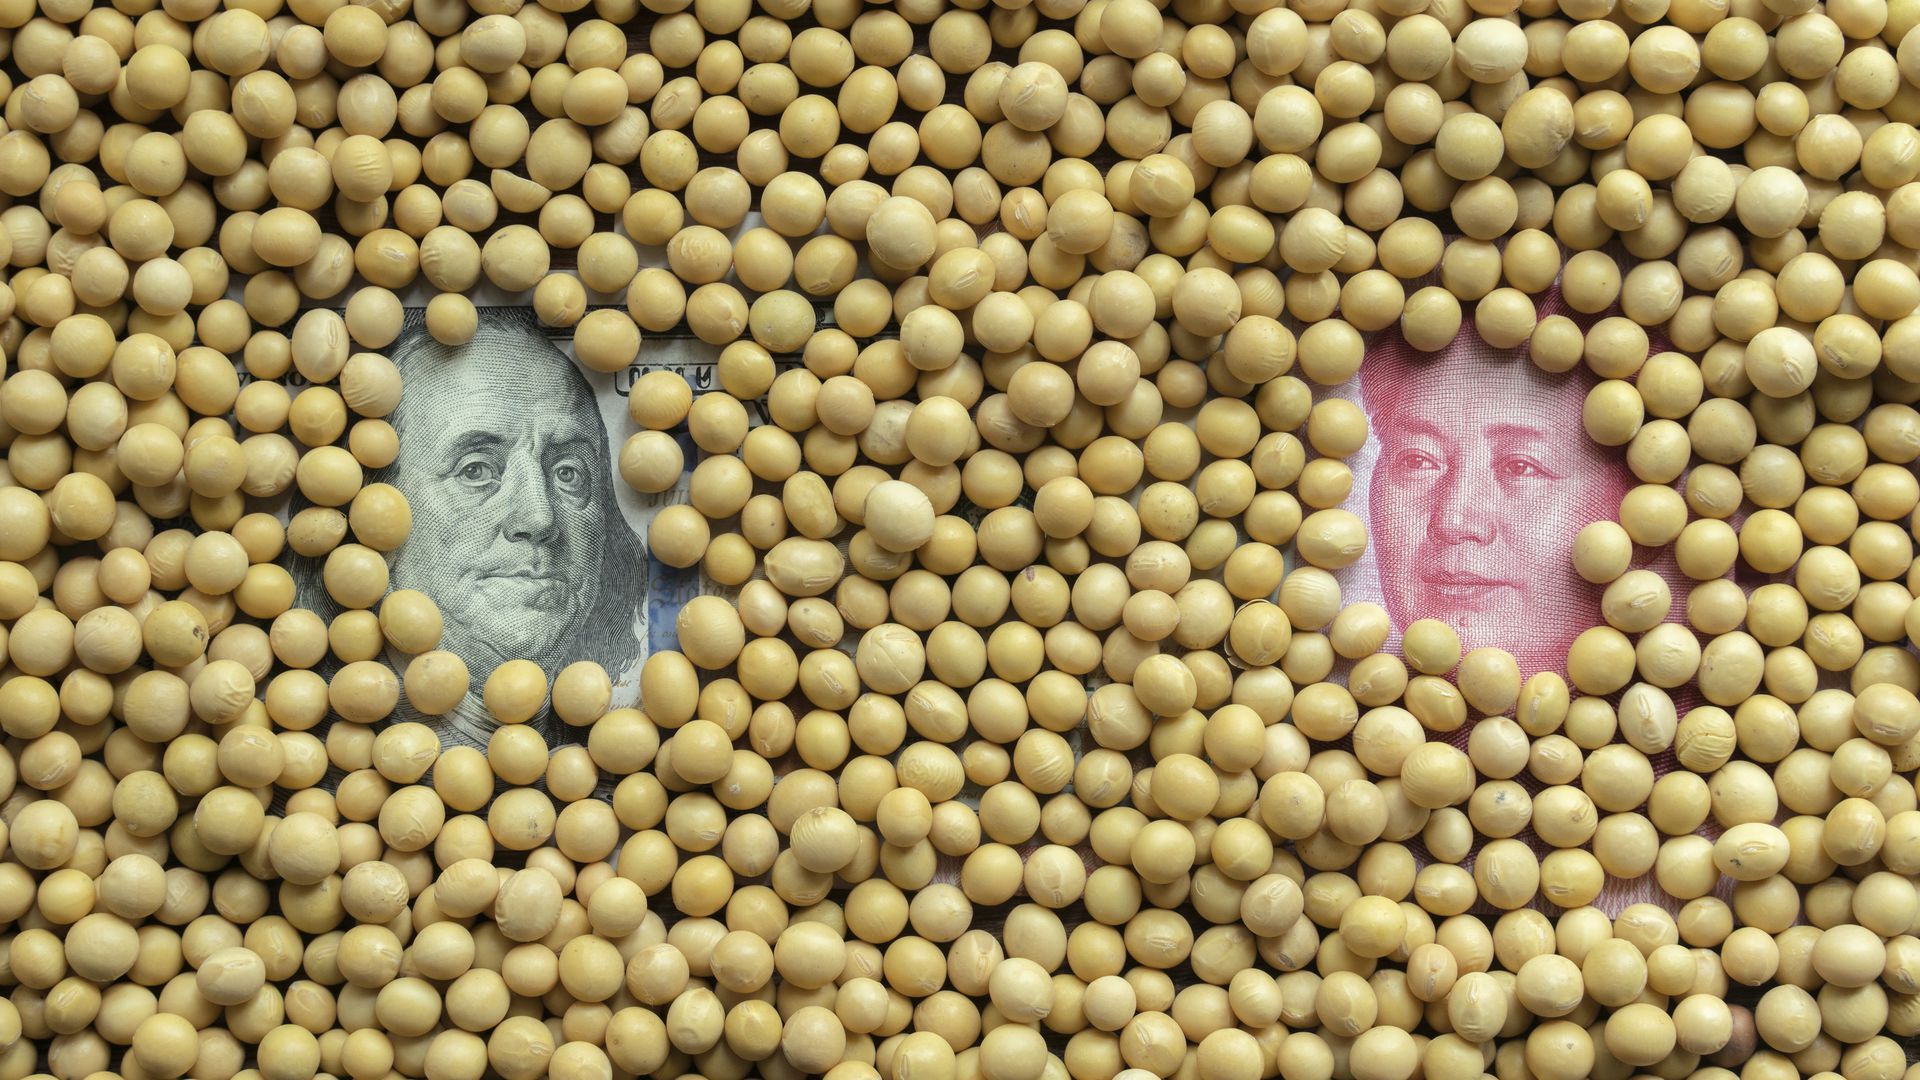 Soybeans covering U.S. dollar bill and China's RMB bill